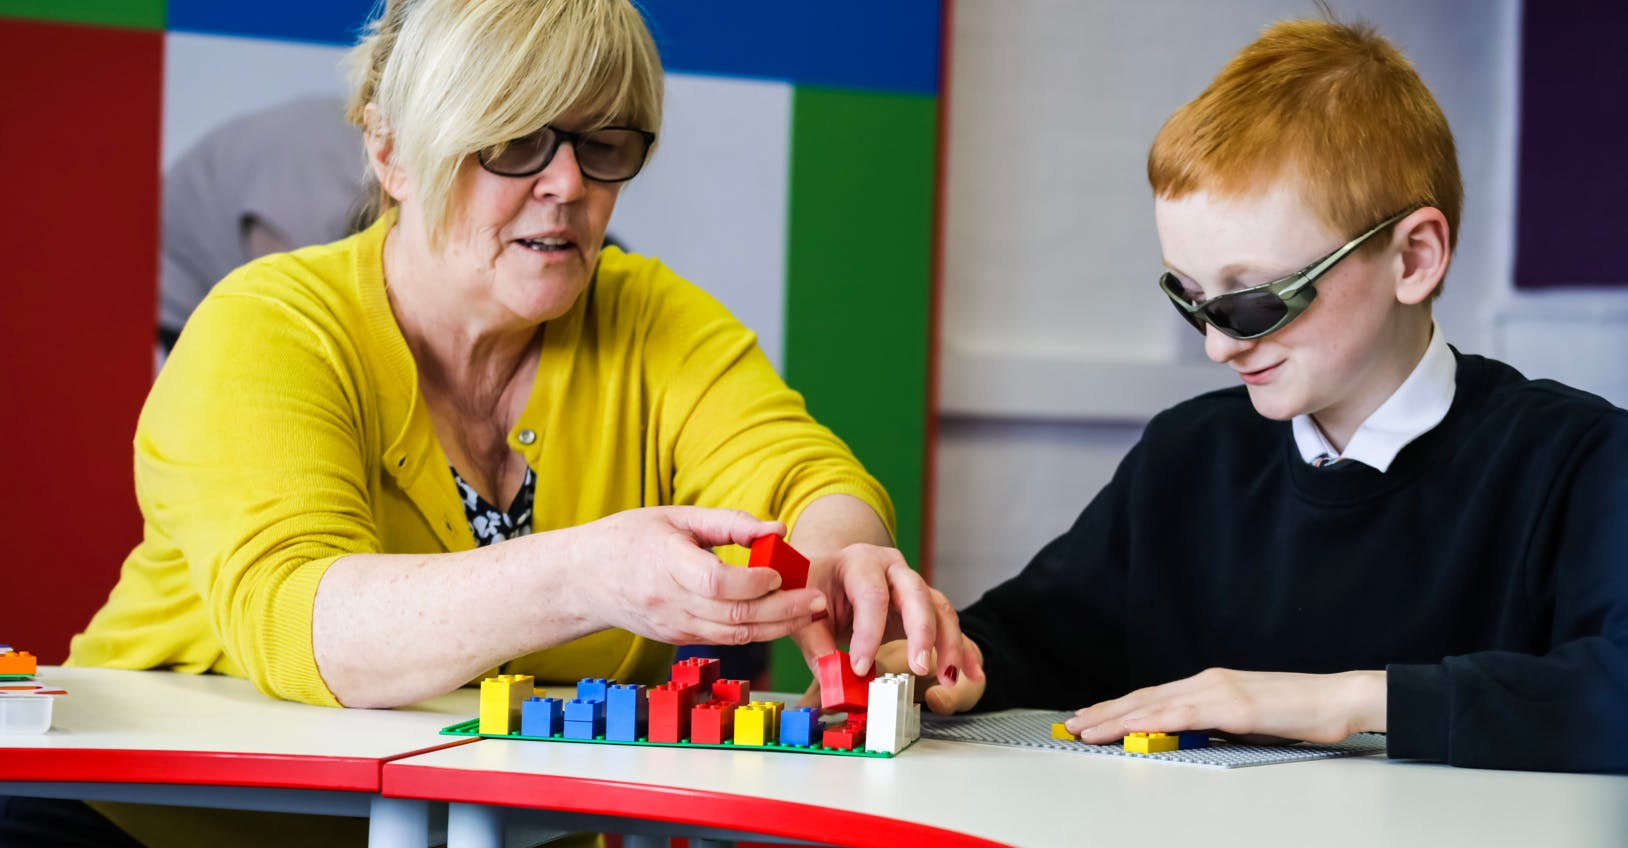 Teacher and child using LEGO Braille Bricks